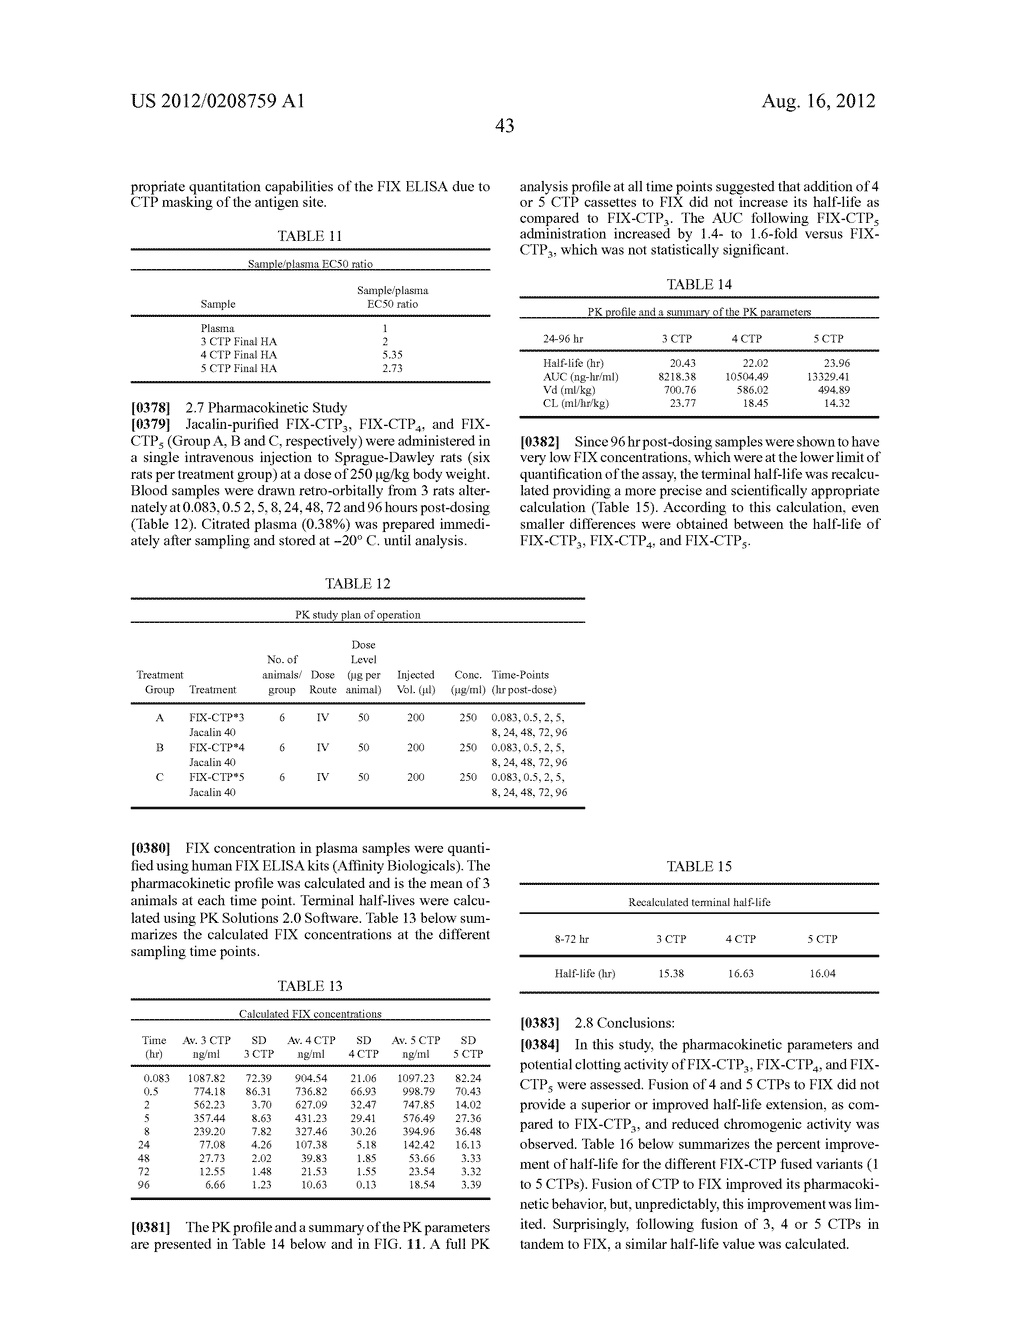 LONG-ACTING COAGULATION FACTORS AND METHODS OF PRODUCING SAME - diagram, schematic, and image 67